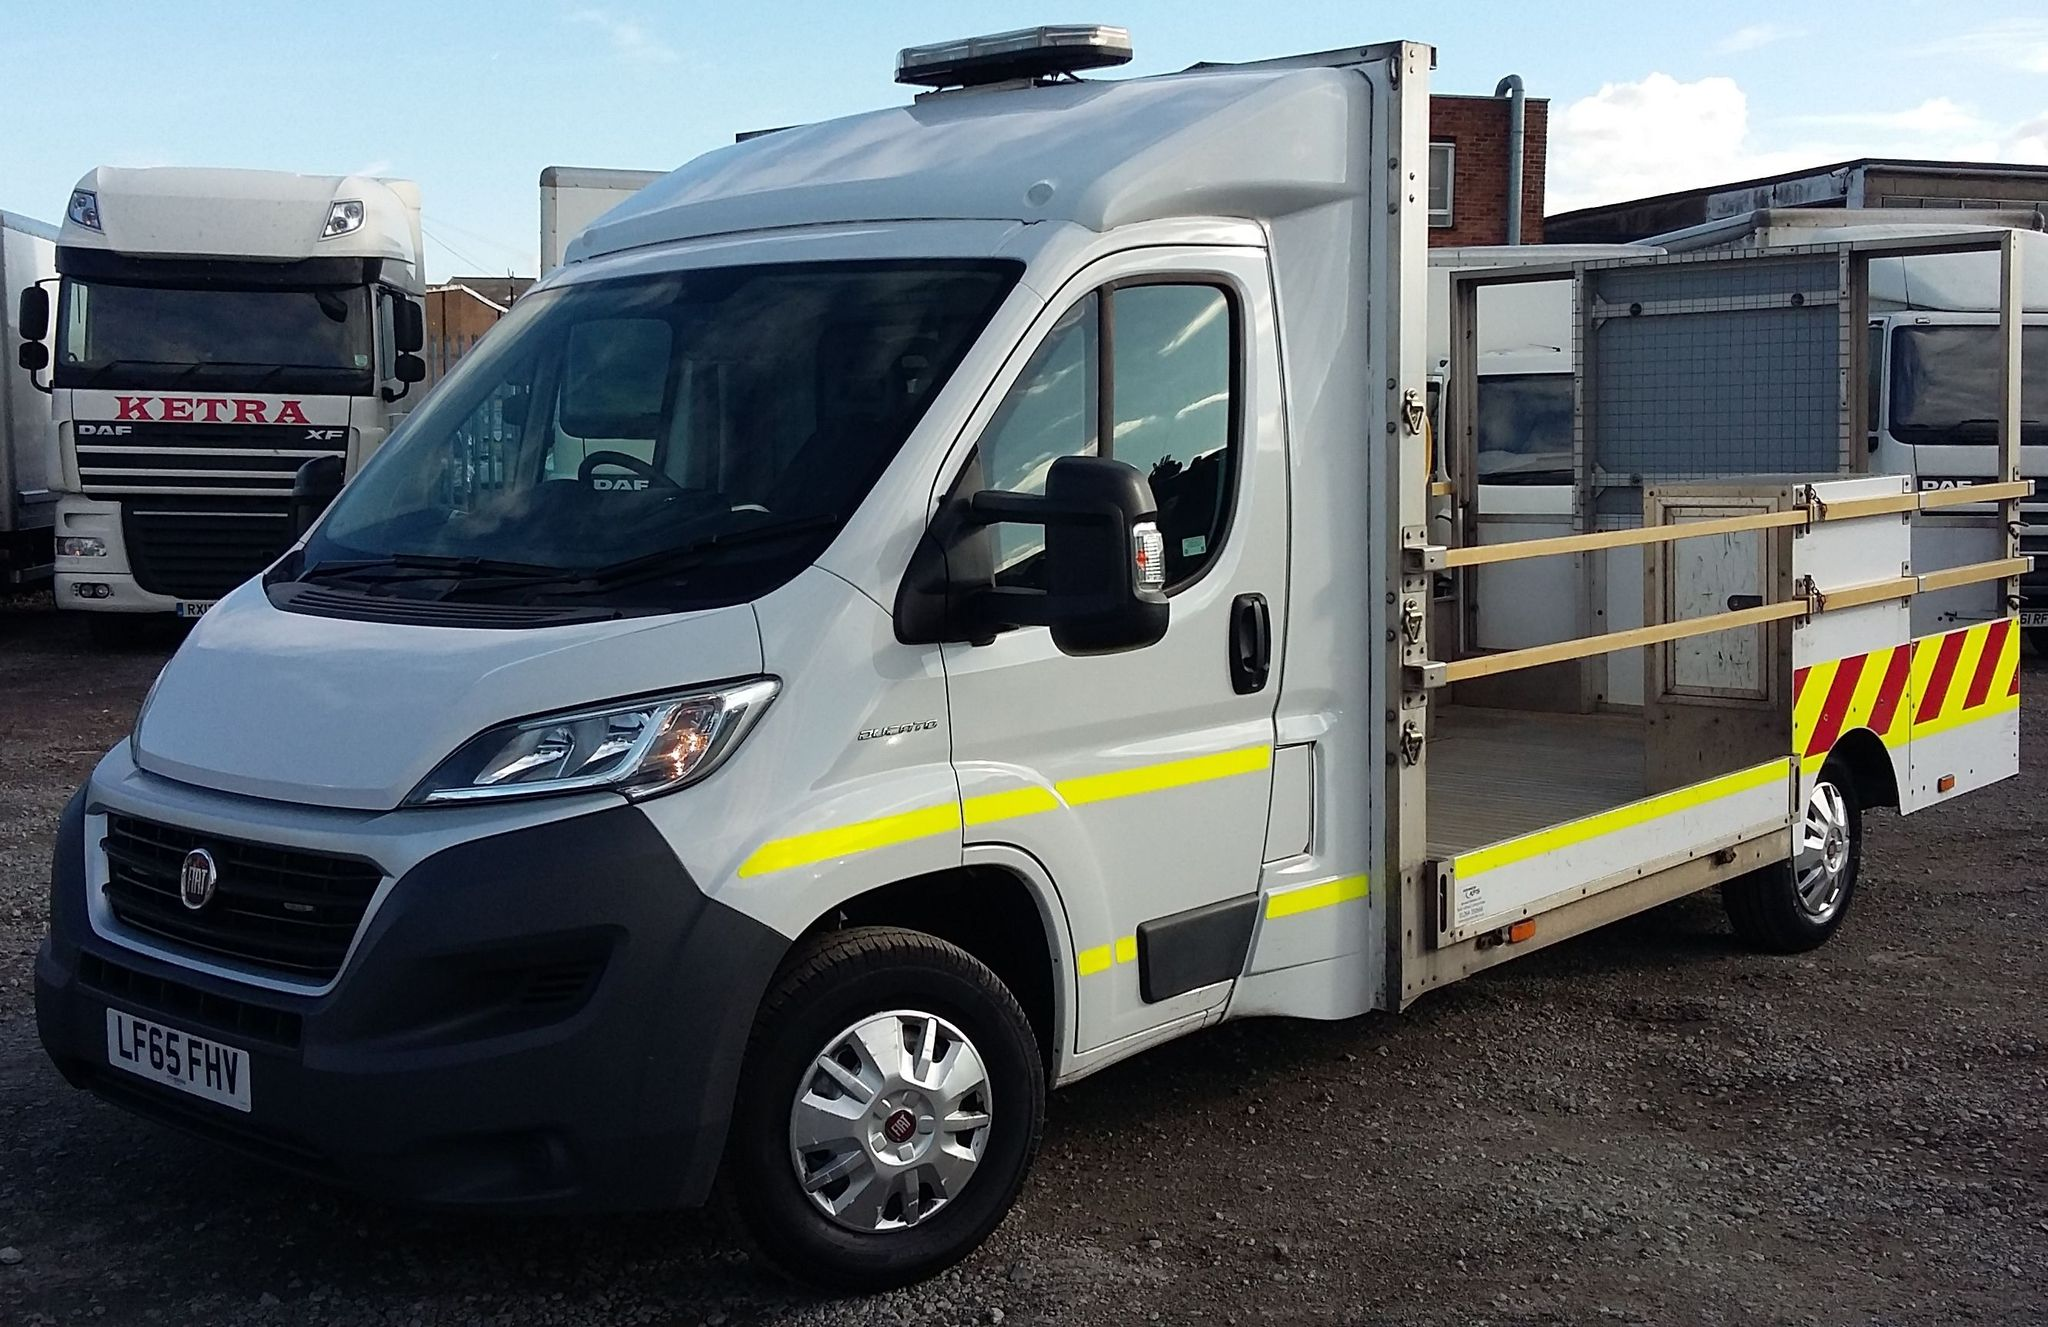 Fiat Ducato 2.3 JTD Multijet II 35 MH1 Chassis Cab 2dr